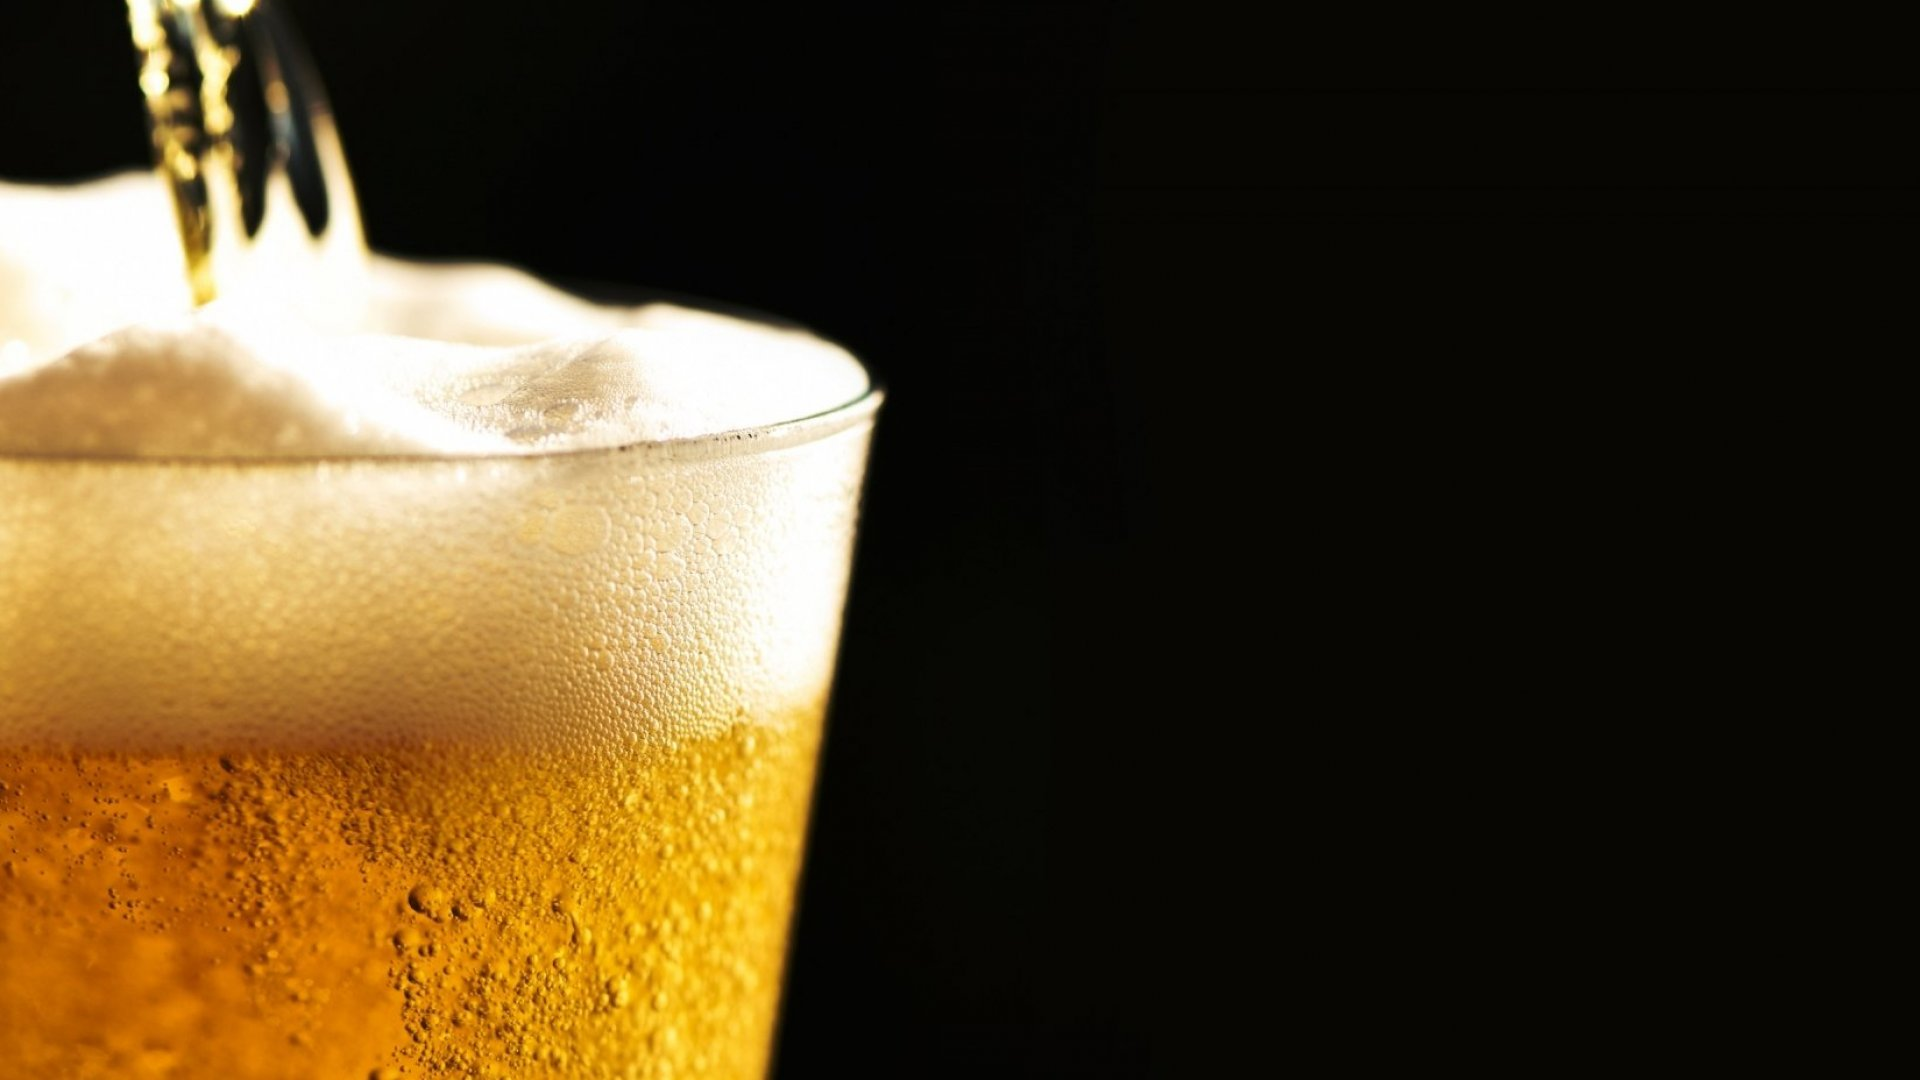 Science: Alcohol Can Help Improve Your Foreign Language Skills (Which Can Make You Smarter and Much More)